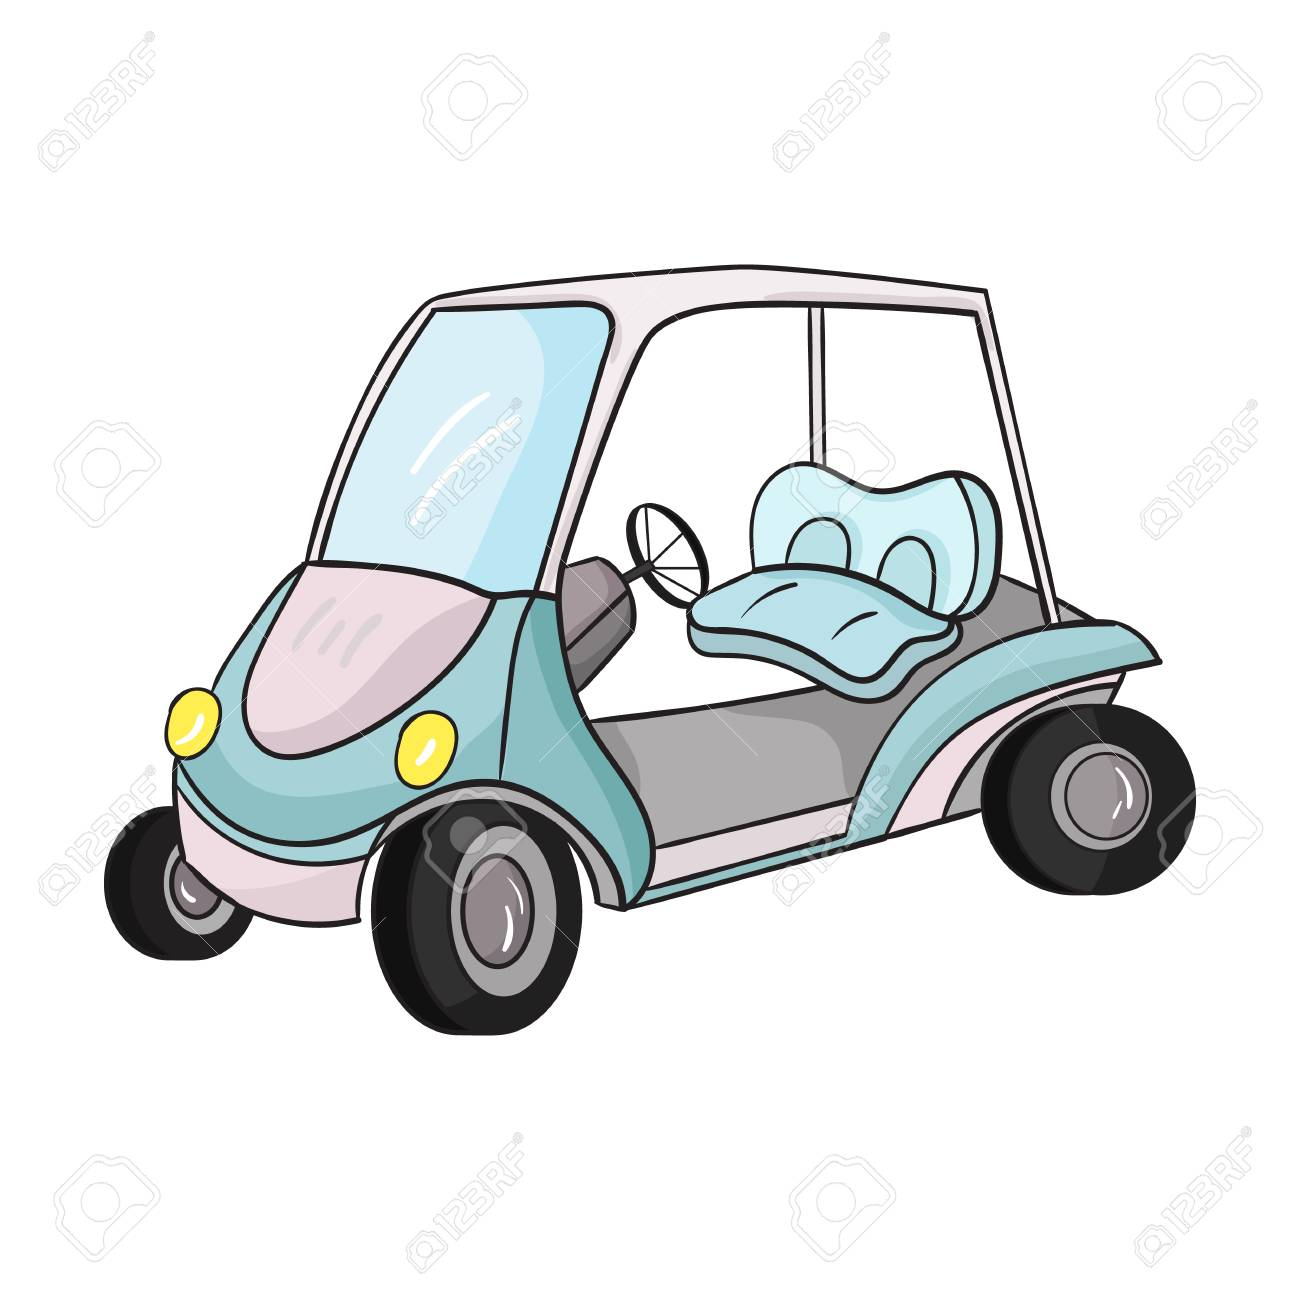 Golf Cart Icon In Cartoon Style Isolated On White Background Royalty Free Cliparts Vectors And Stock Illustration Image 67468818